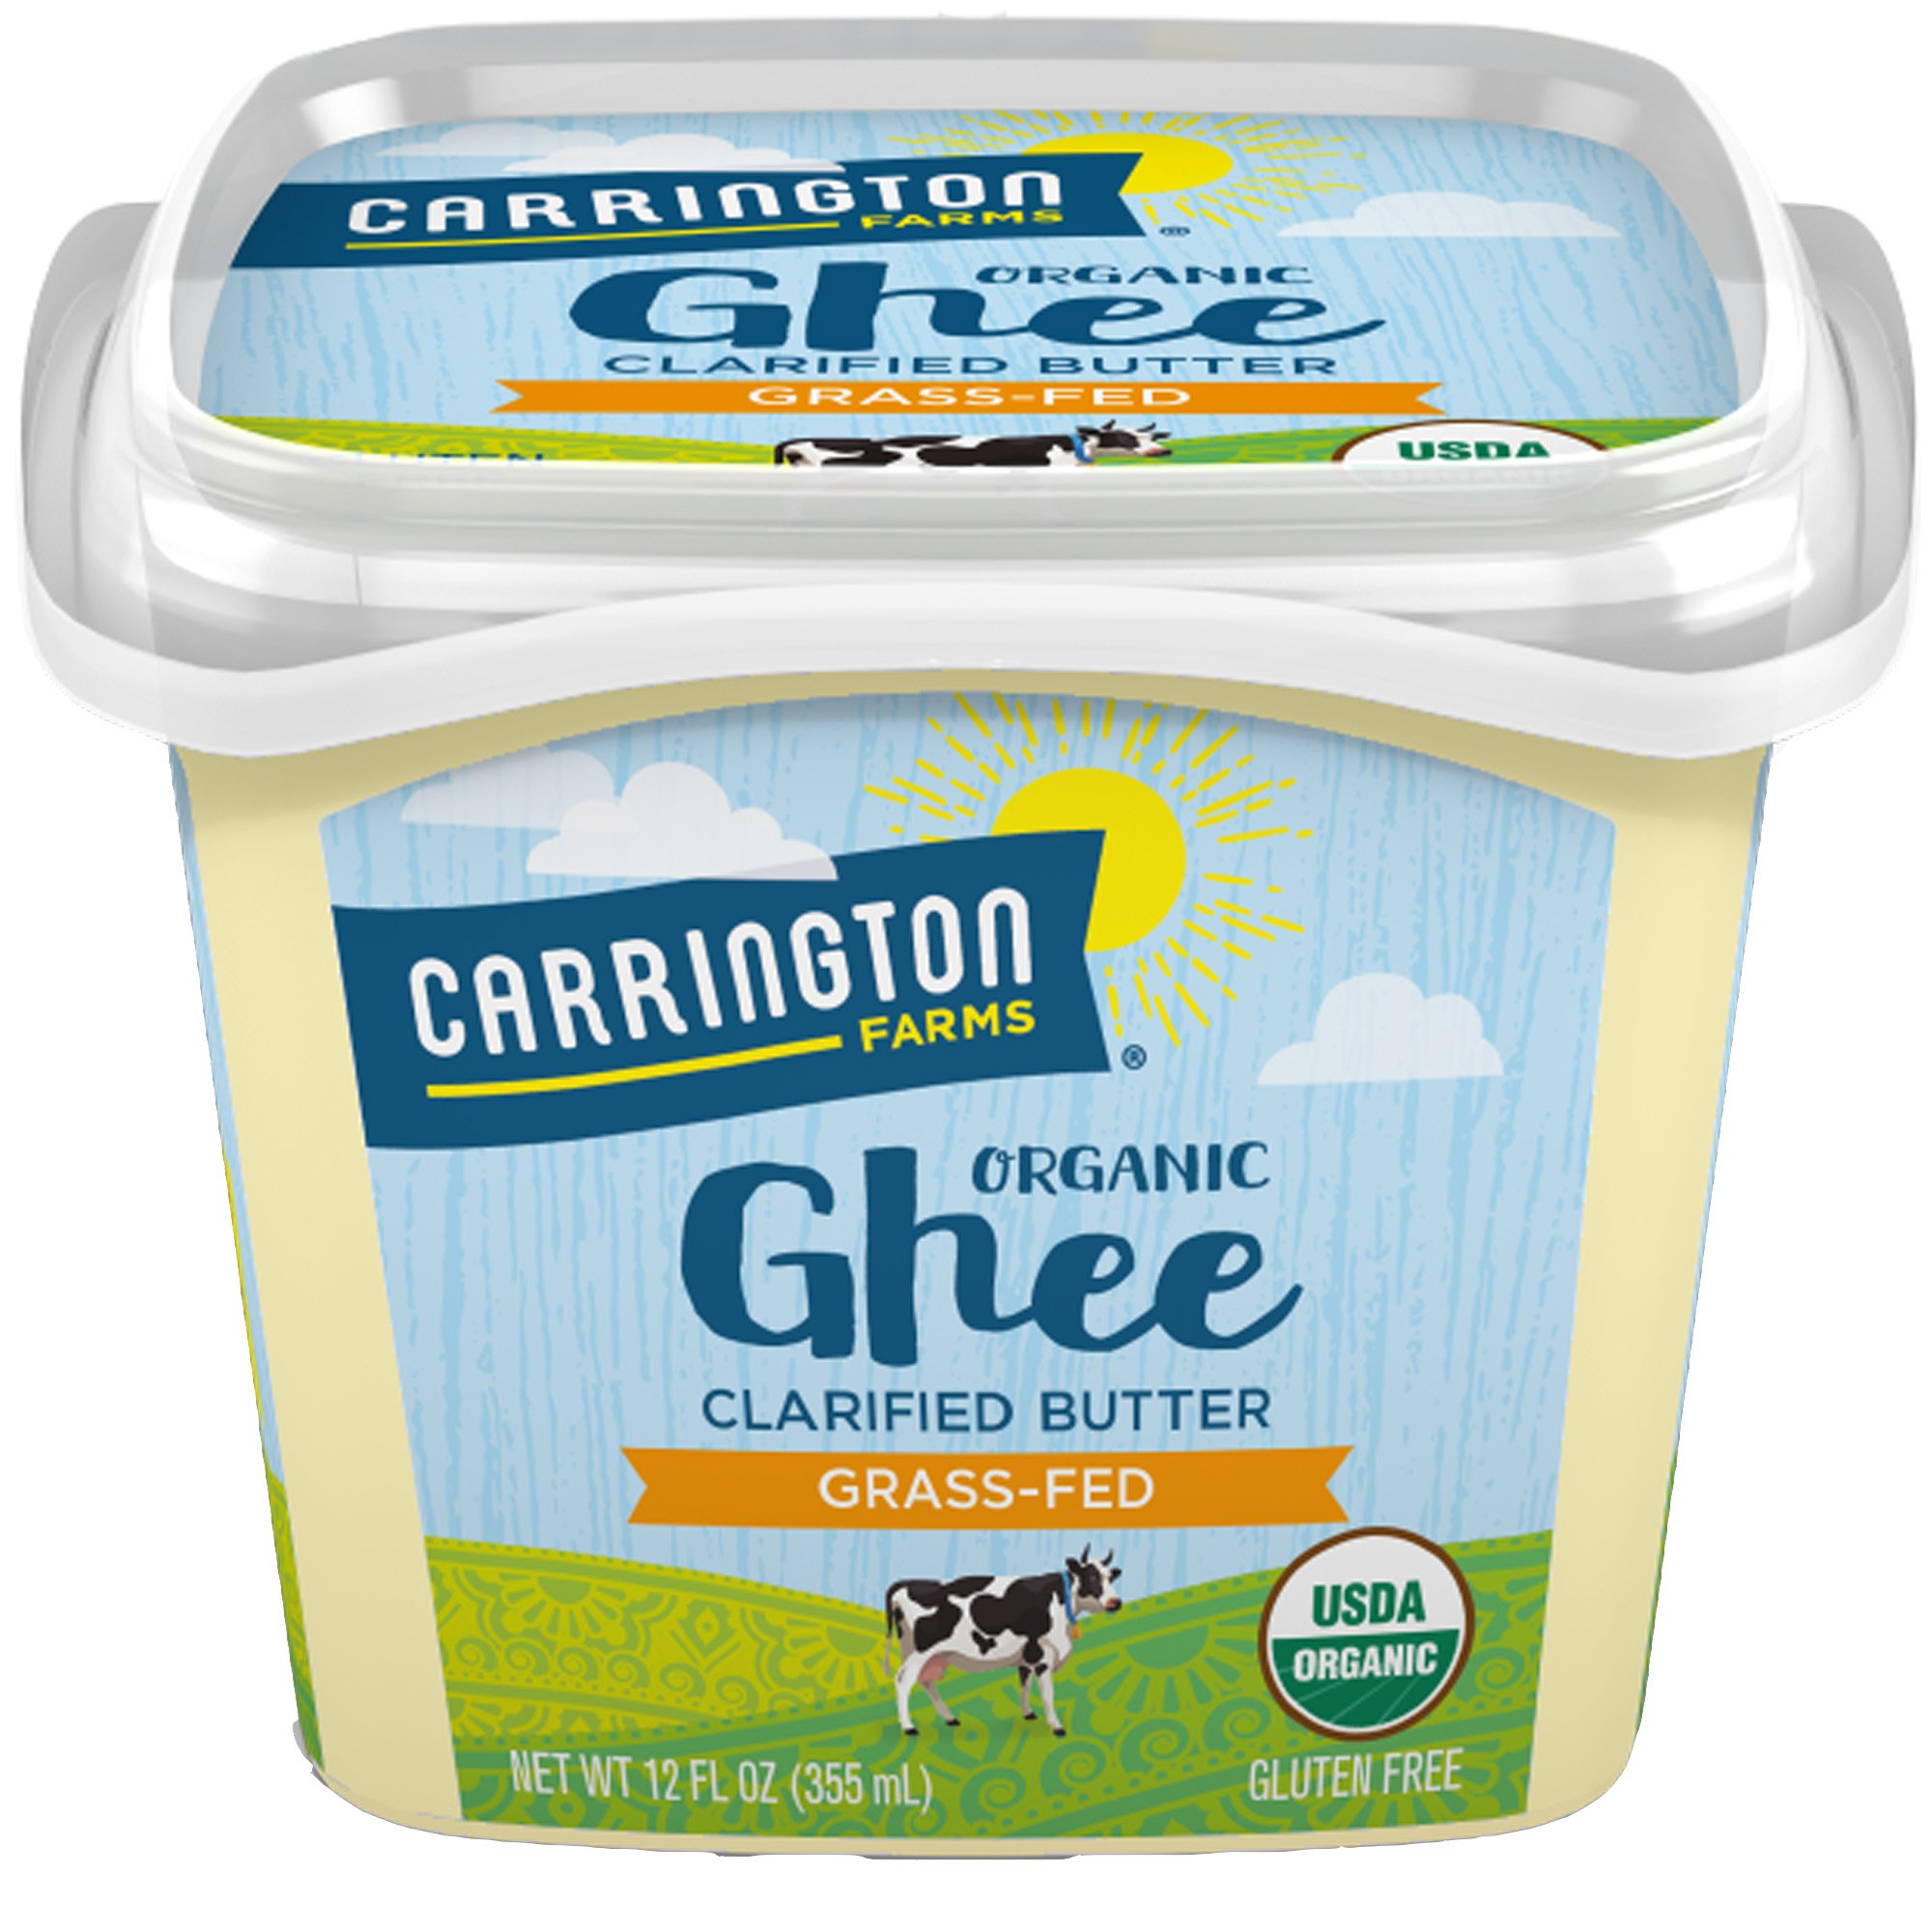 Carrington Farms USDA Organic Grass Fed Ghee, Clarified Butter, Lactose Free, Casein Free, Gluten Free, Non Hydrogenated, 0g Trans Fat, BPA Free, 12 Ounce, Packaging May Vary